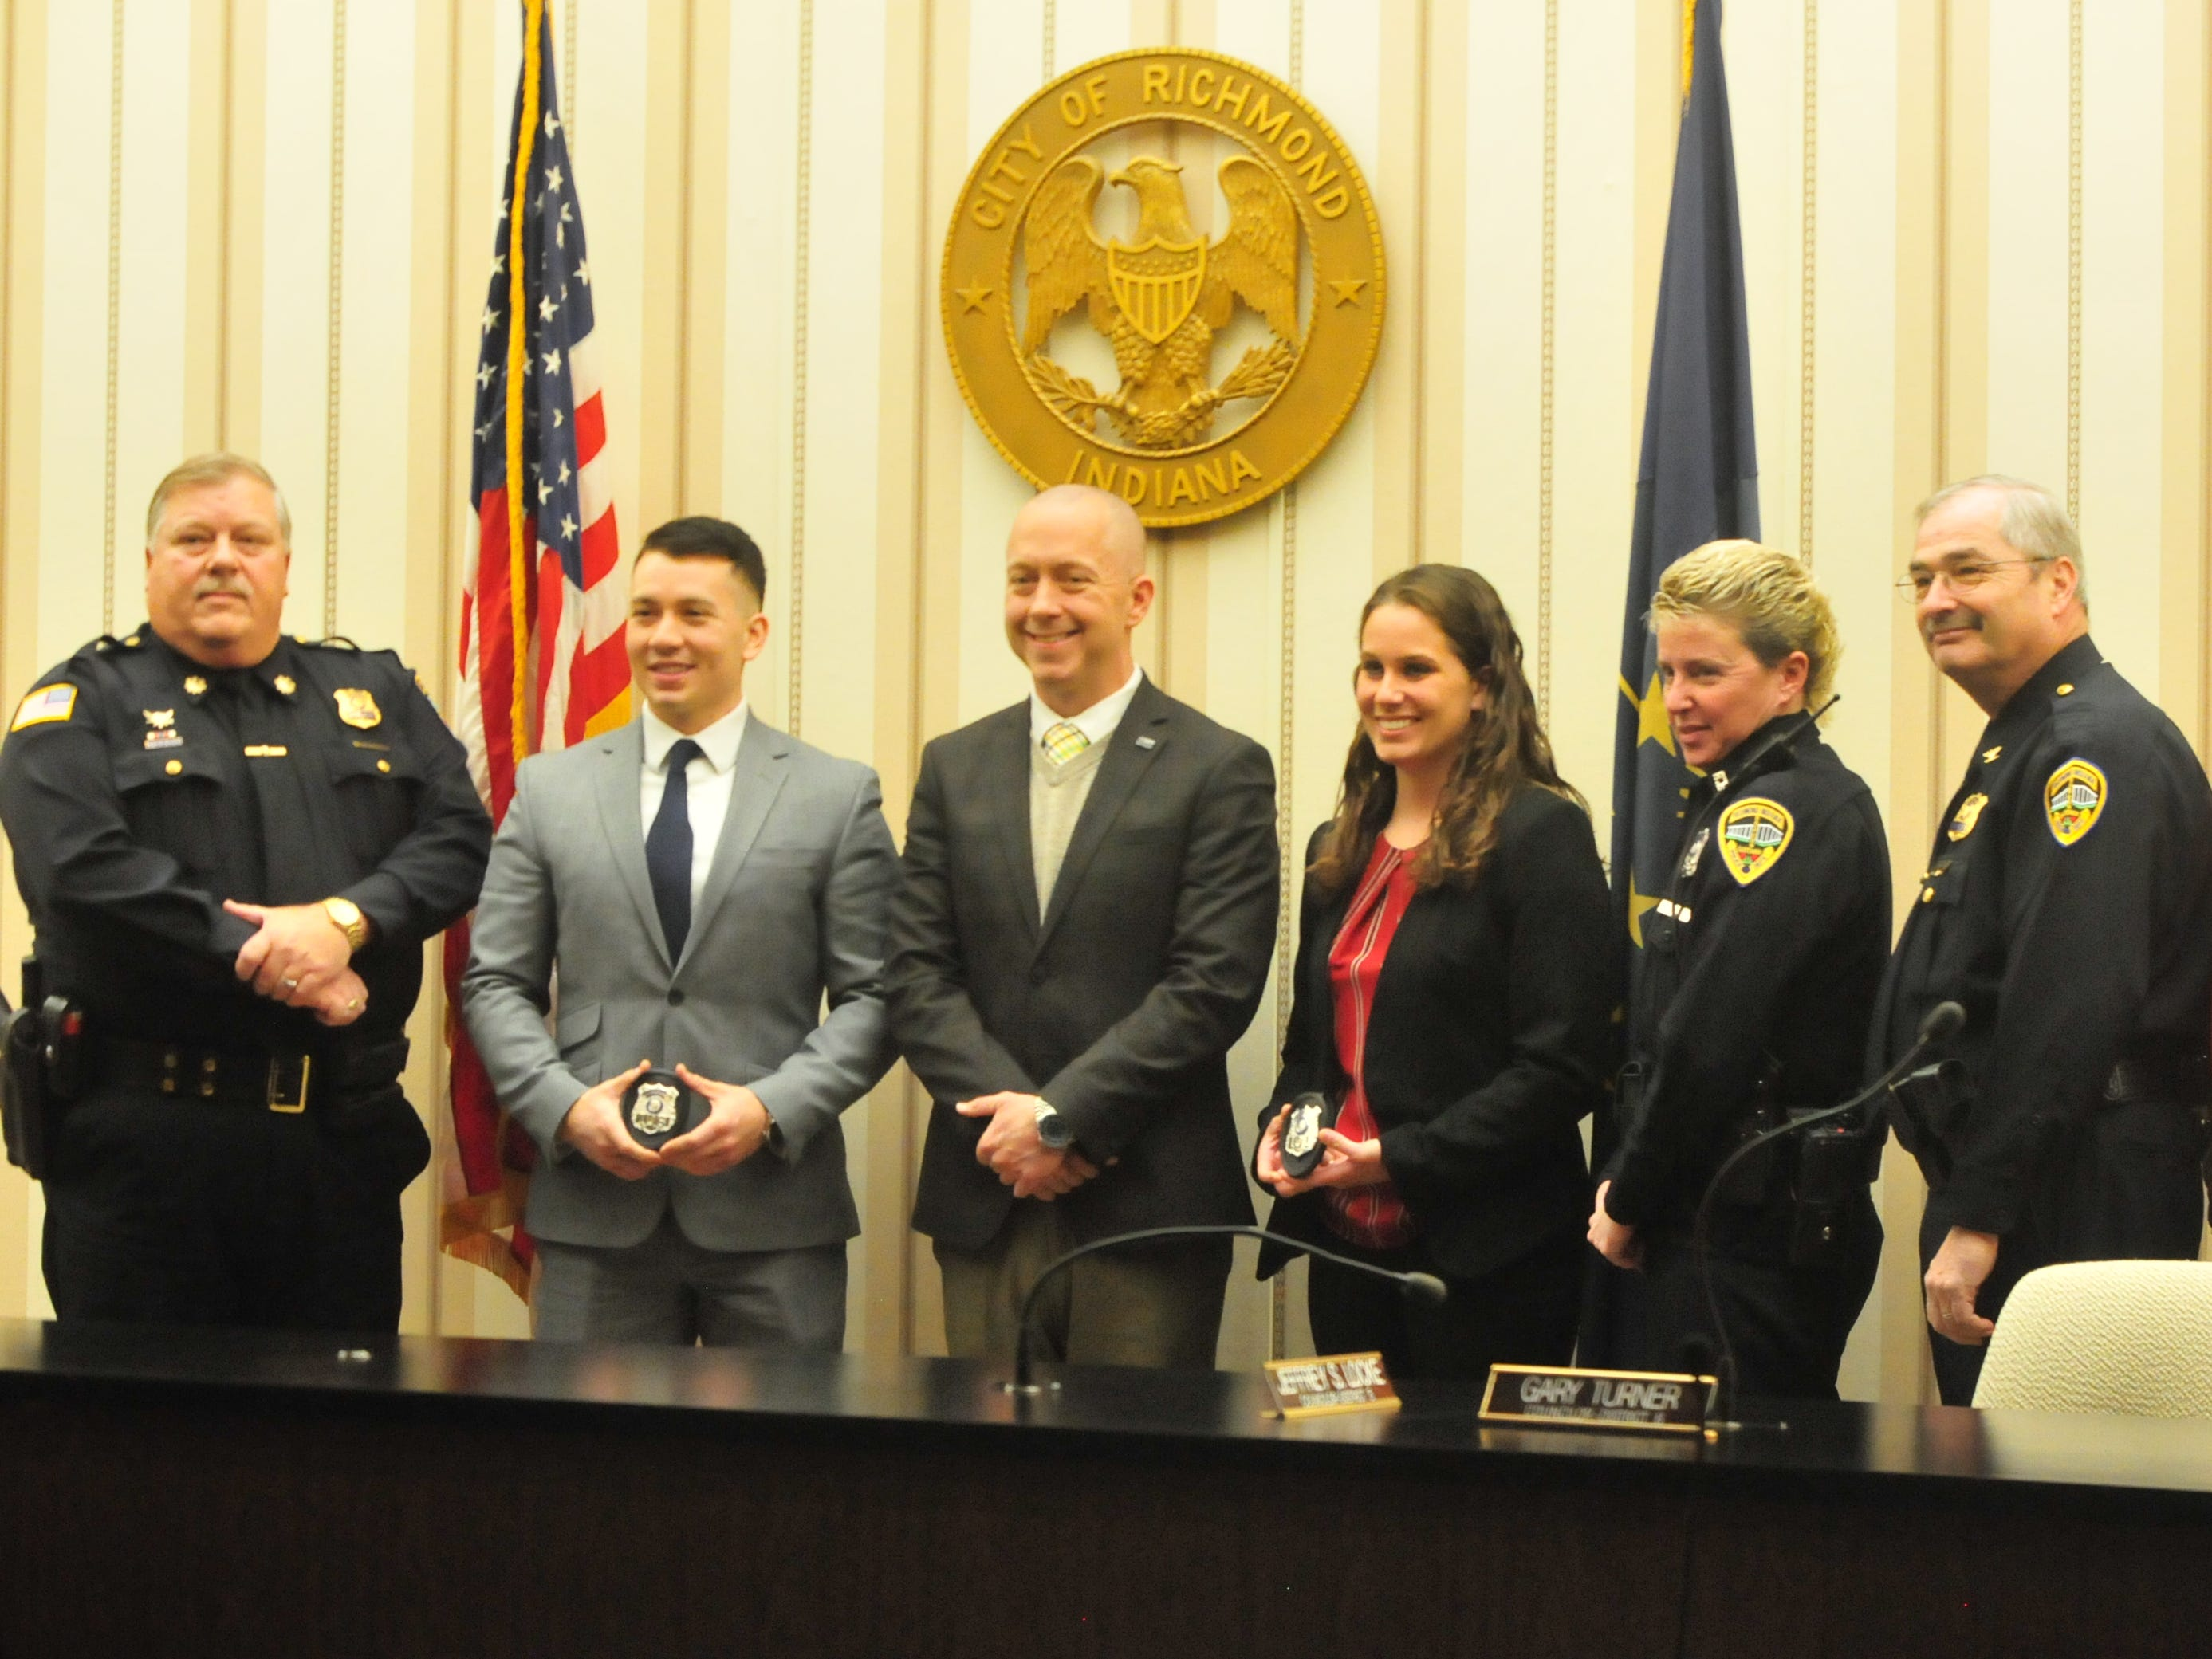 Joshua Anicete and Jessica Thackrey pose for photographs with Major Mike Britt (from left), Mayor Dave Snow, Officer Ami Miller, Chief Jim Branum and Officer Aaron Stevens.